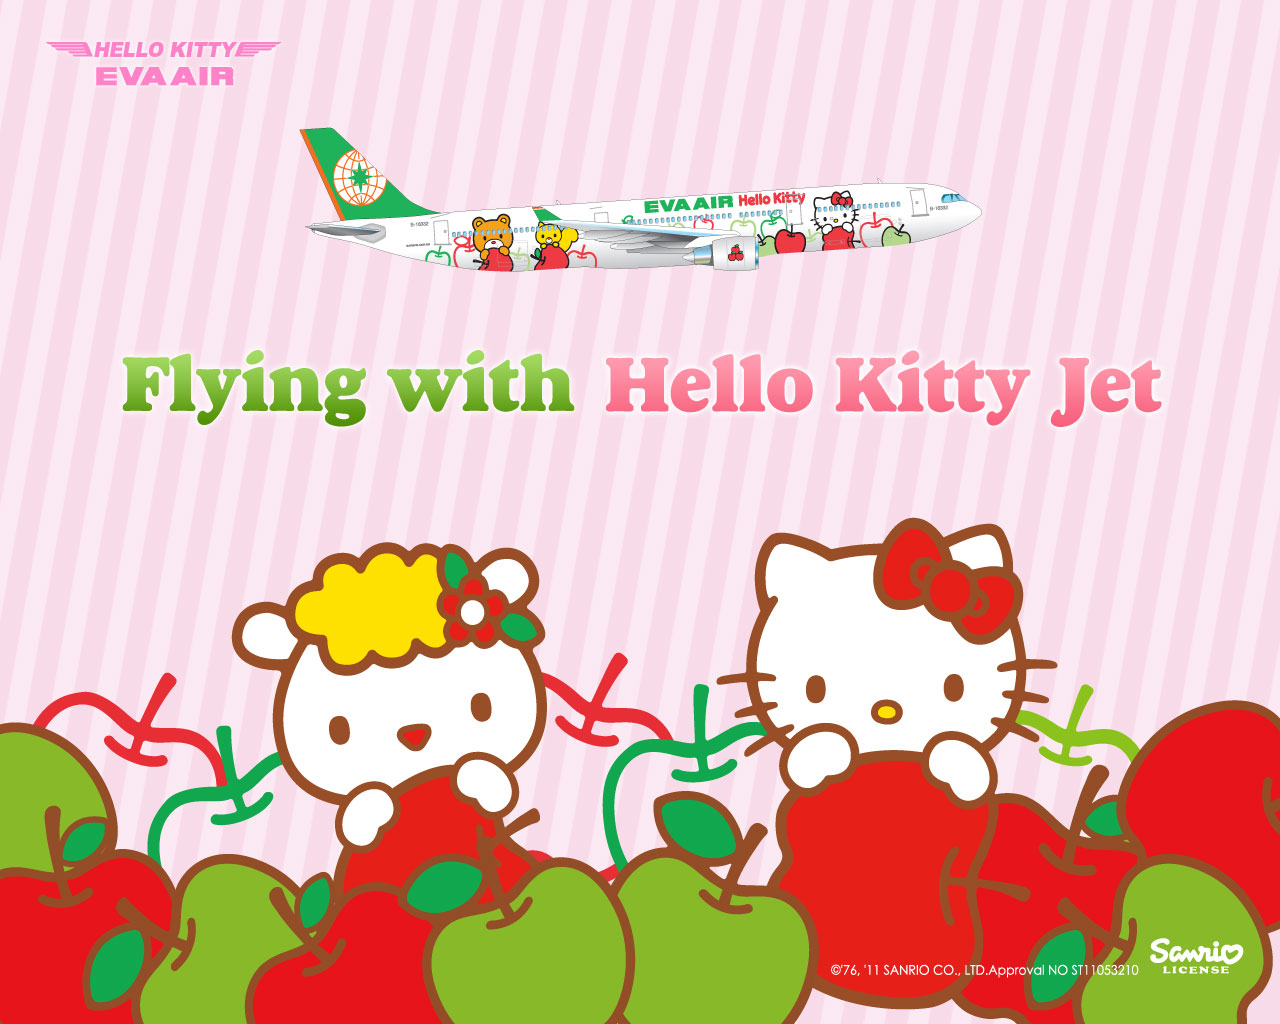 Hello Kitty Eva Airways 2012 Calendars!